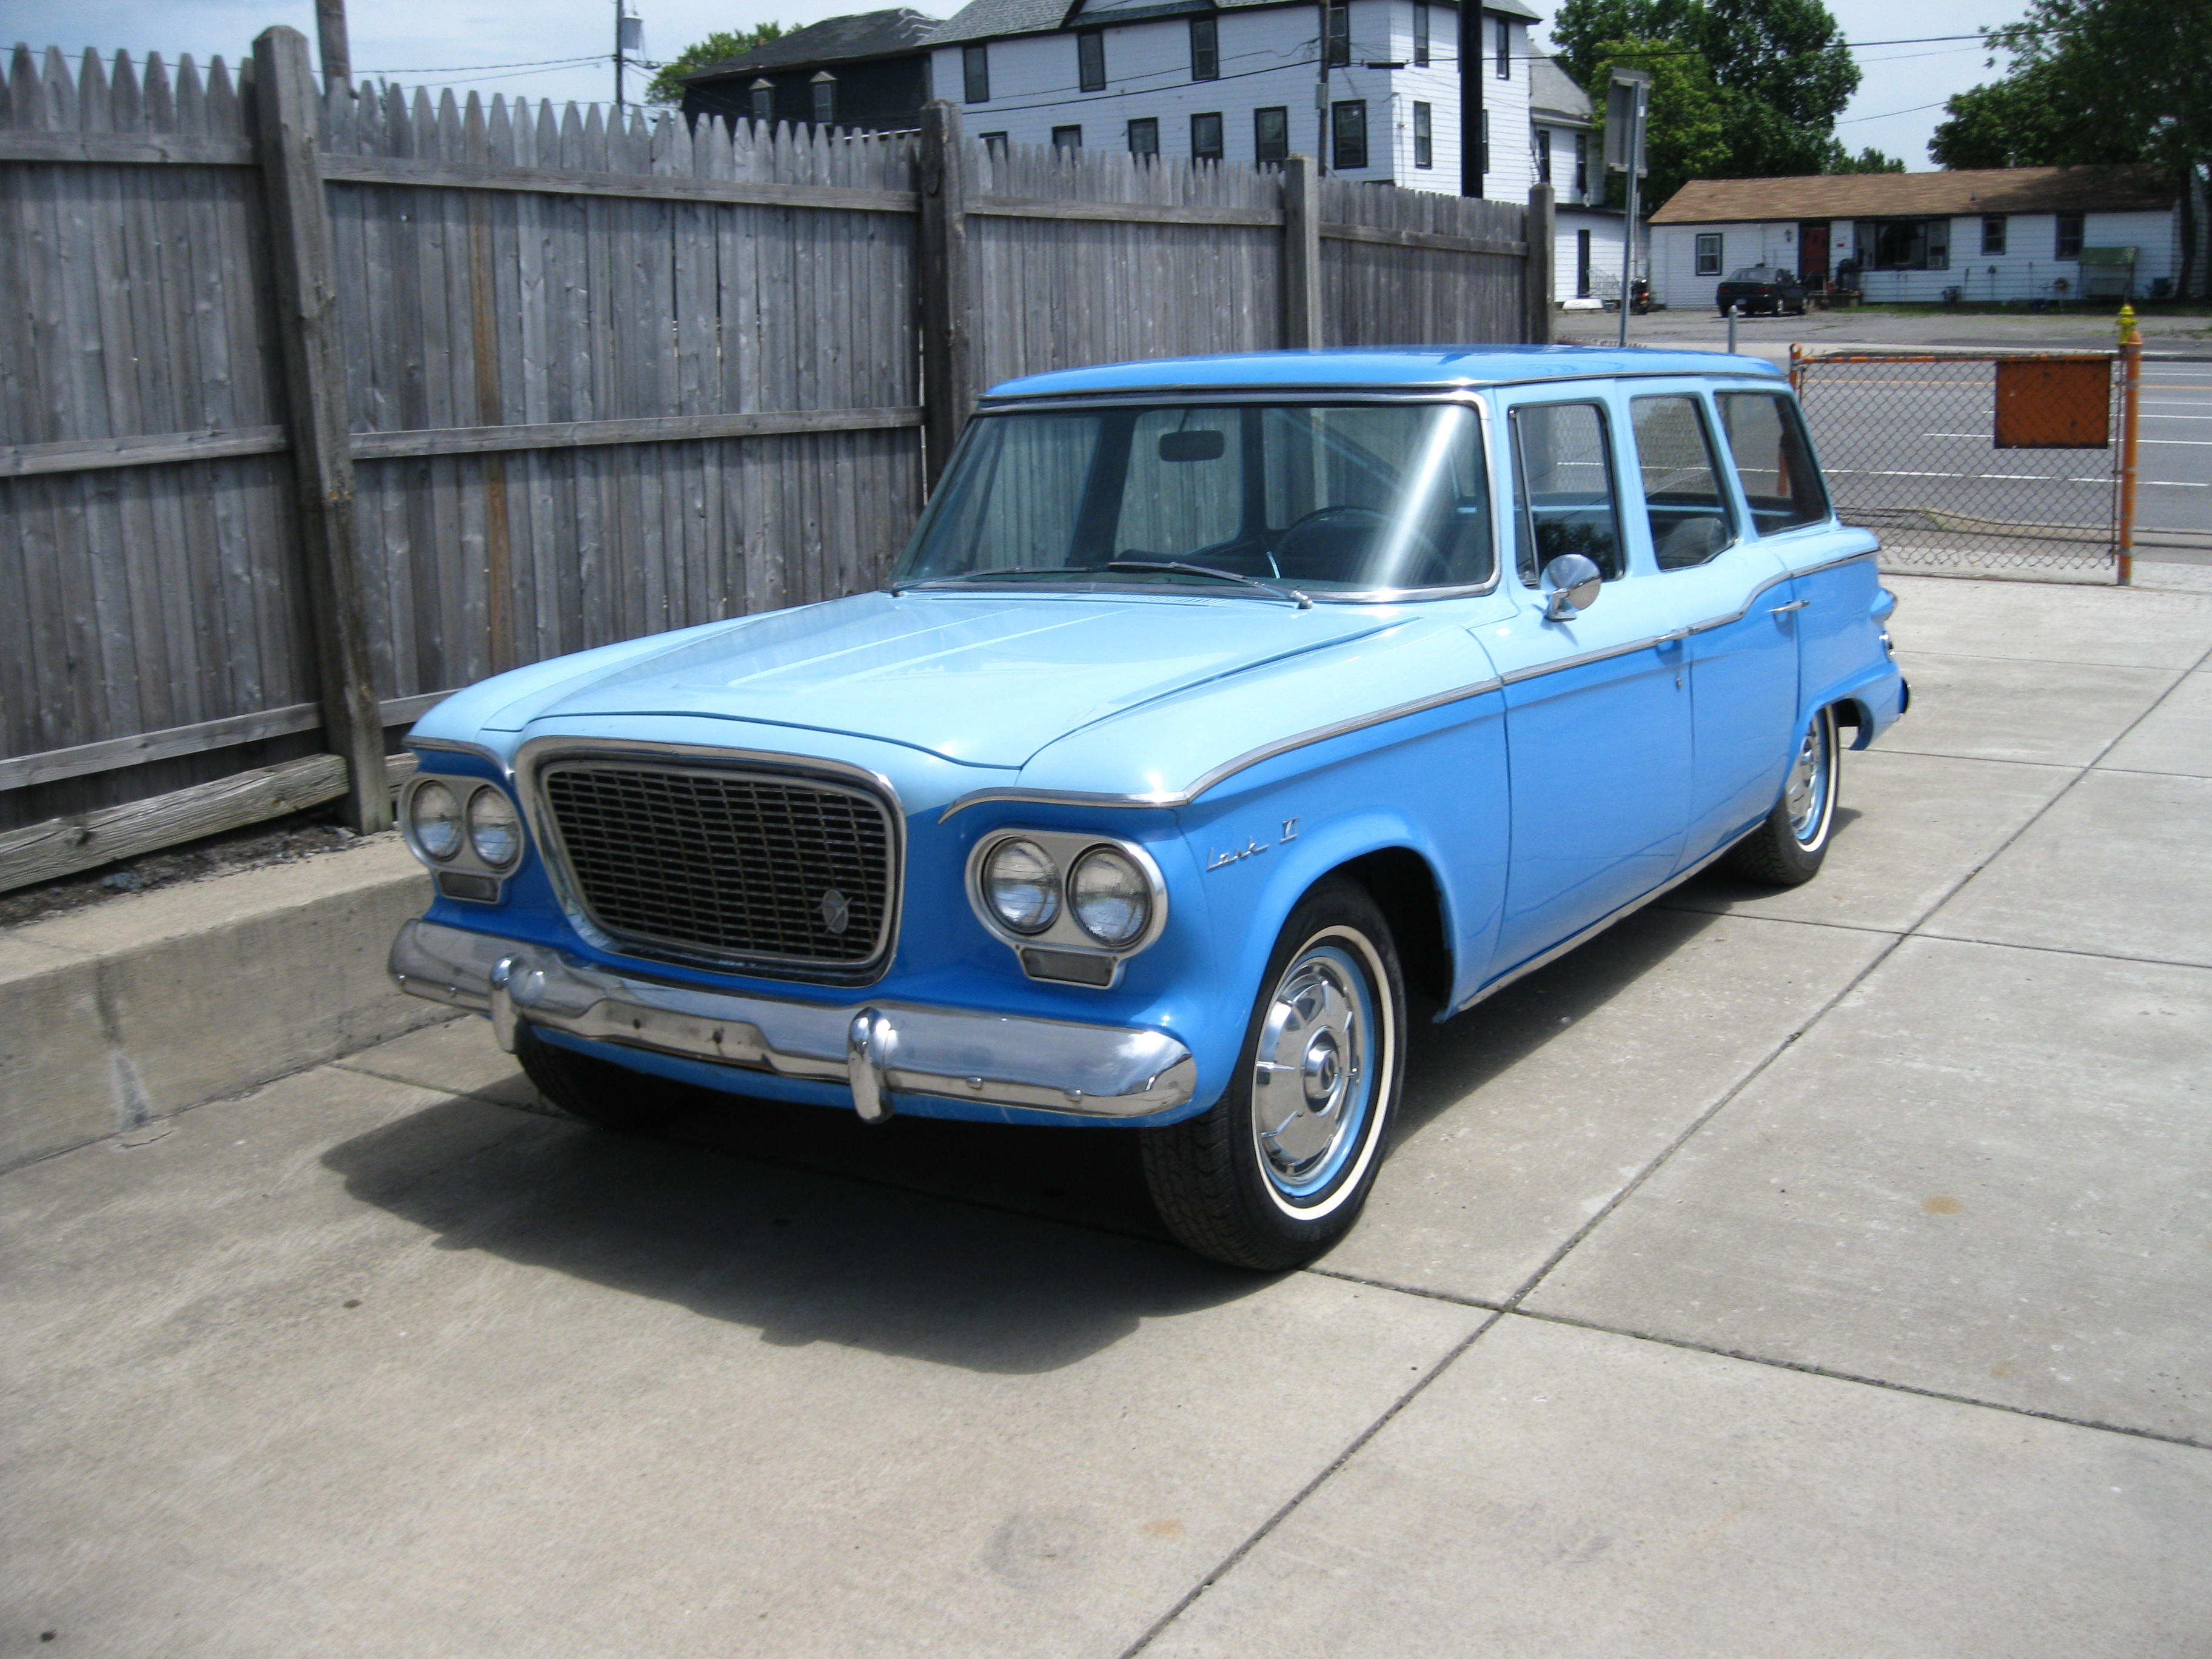 1961 STUDEBAKER STATION WAGON